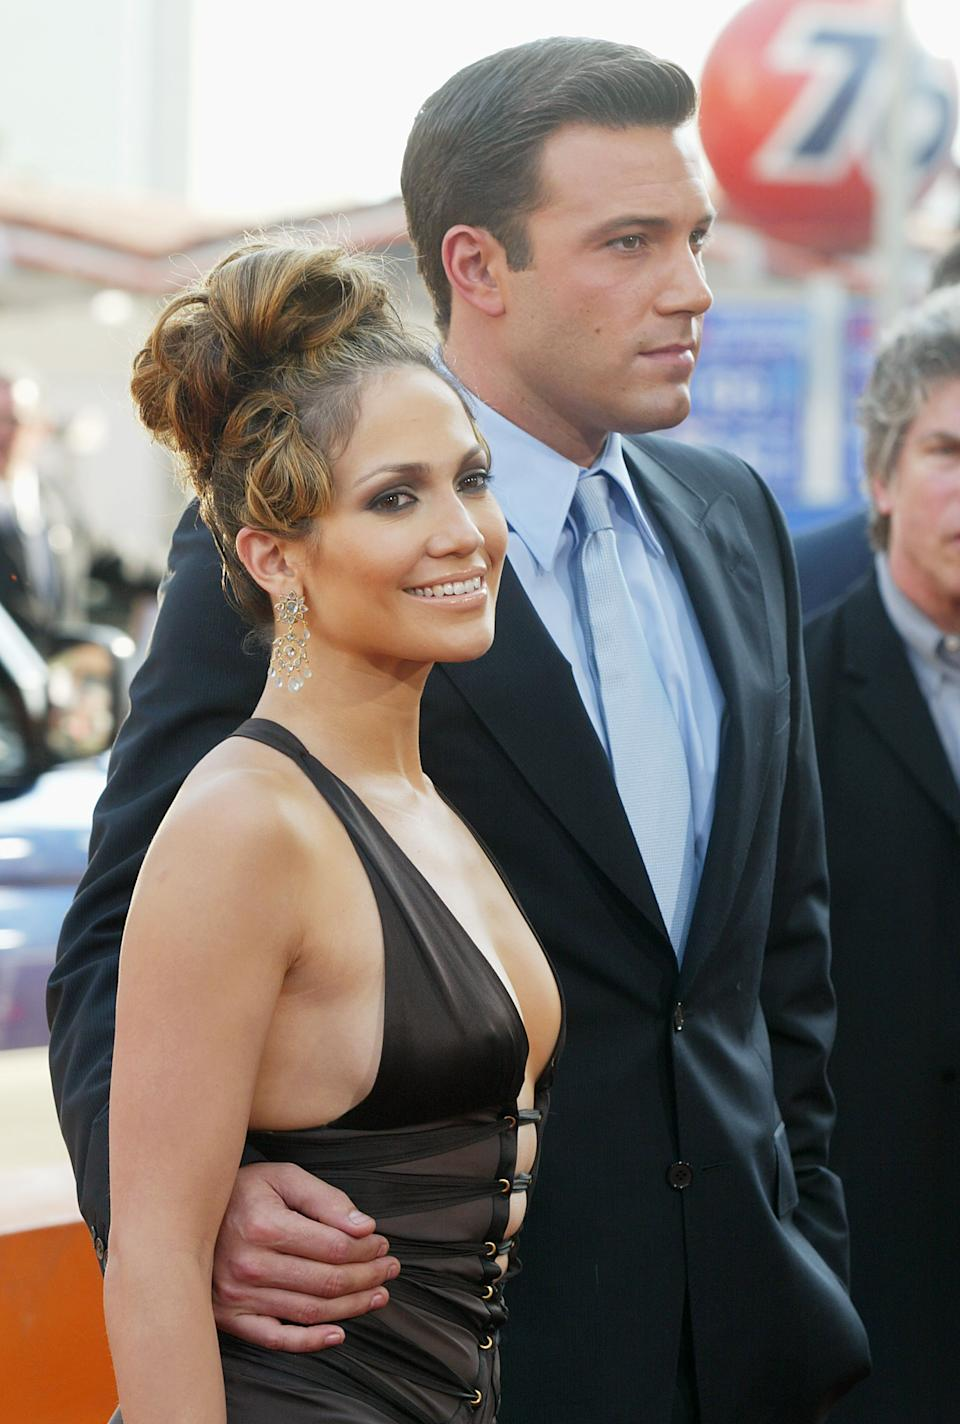 Jennifer Lopez and actor Ben Affleck attend the premiere of 'Gigli' at the Mann National Theatre on July 27, 2003 in Westwood, California. (Getty Images)